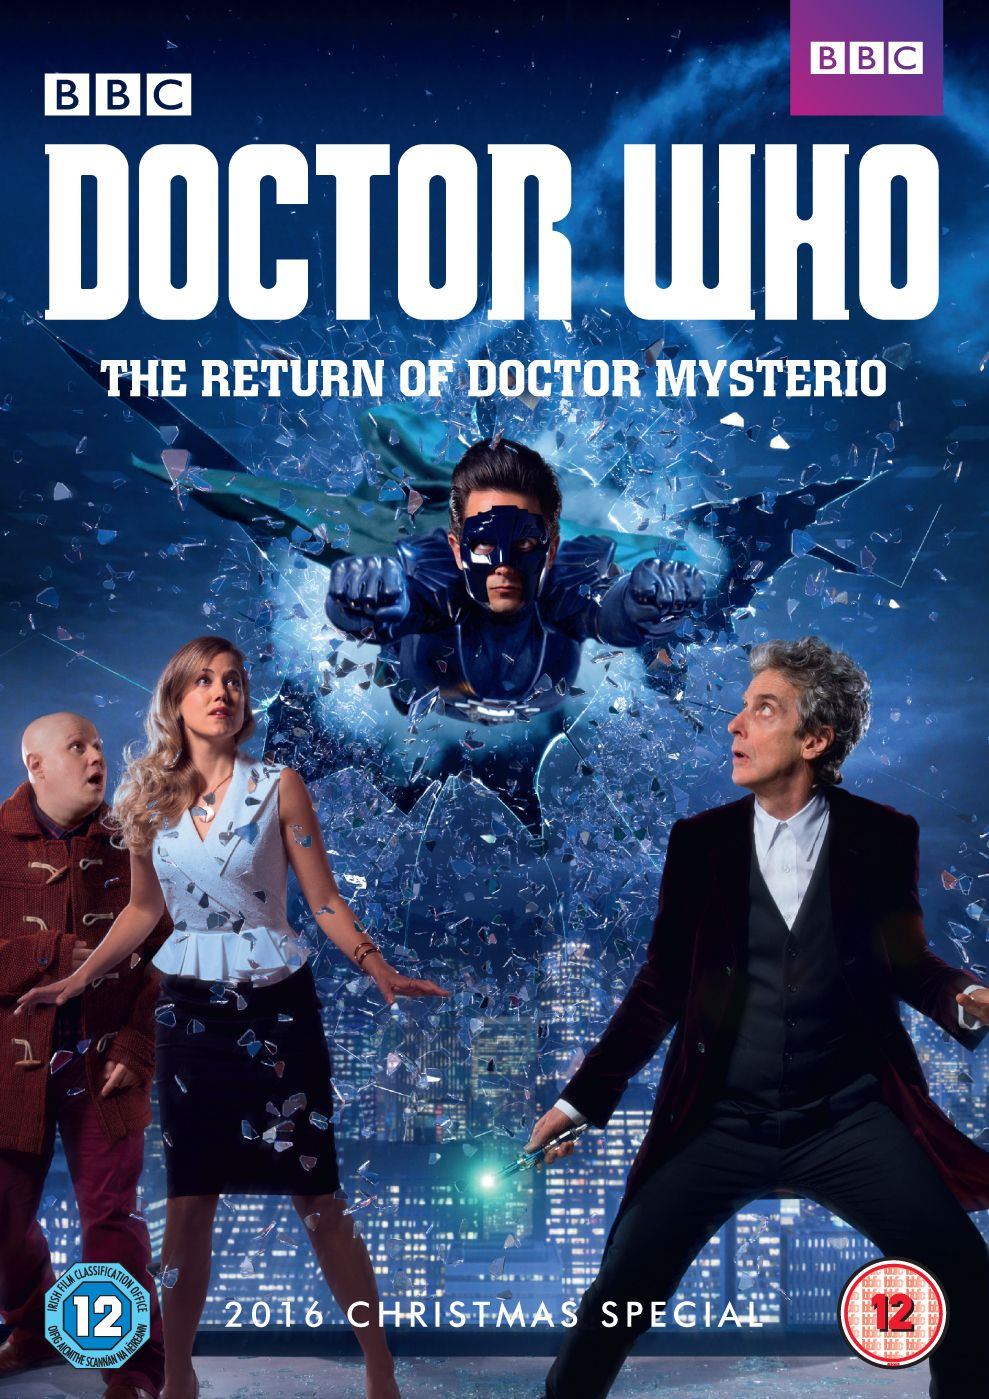 The Return of Doctor Mysterio (DVD) (Credit: BBC Worldwide)